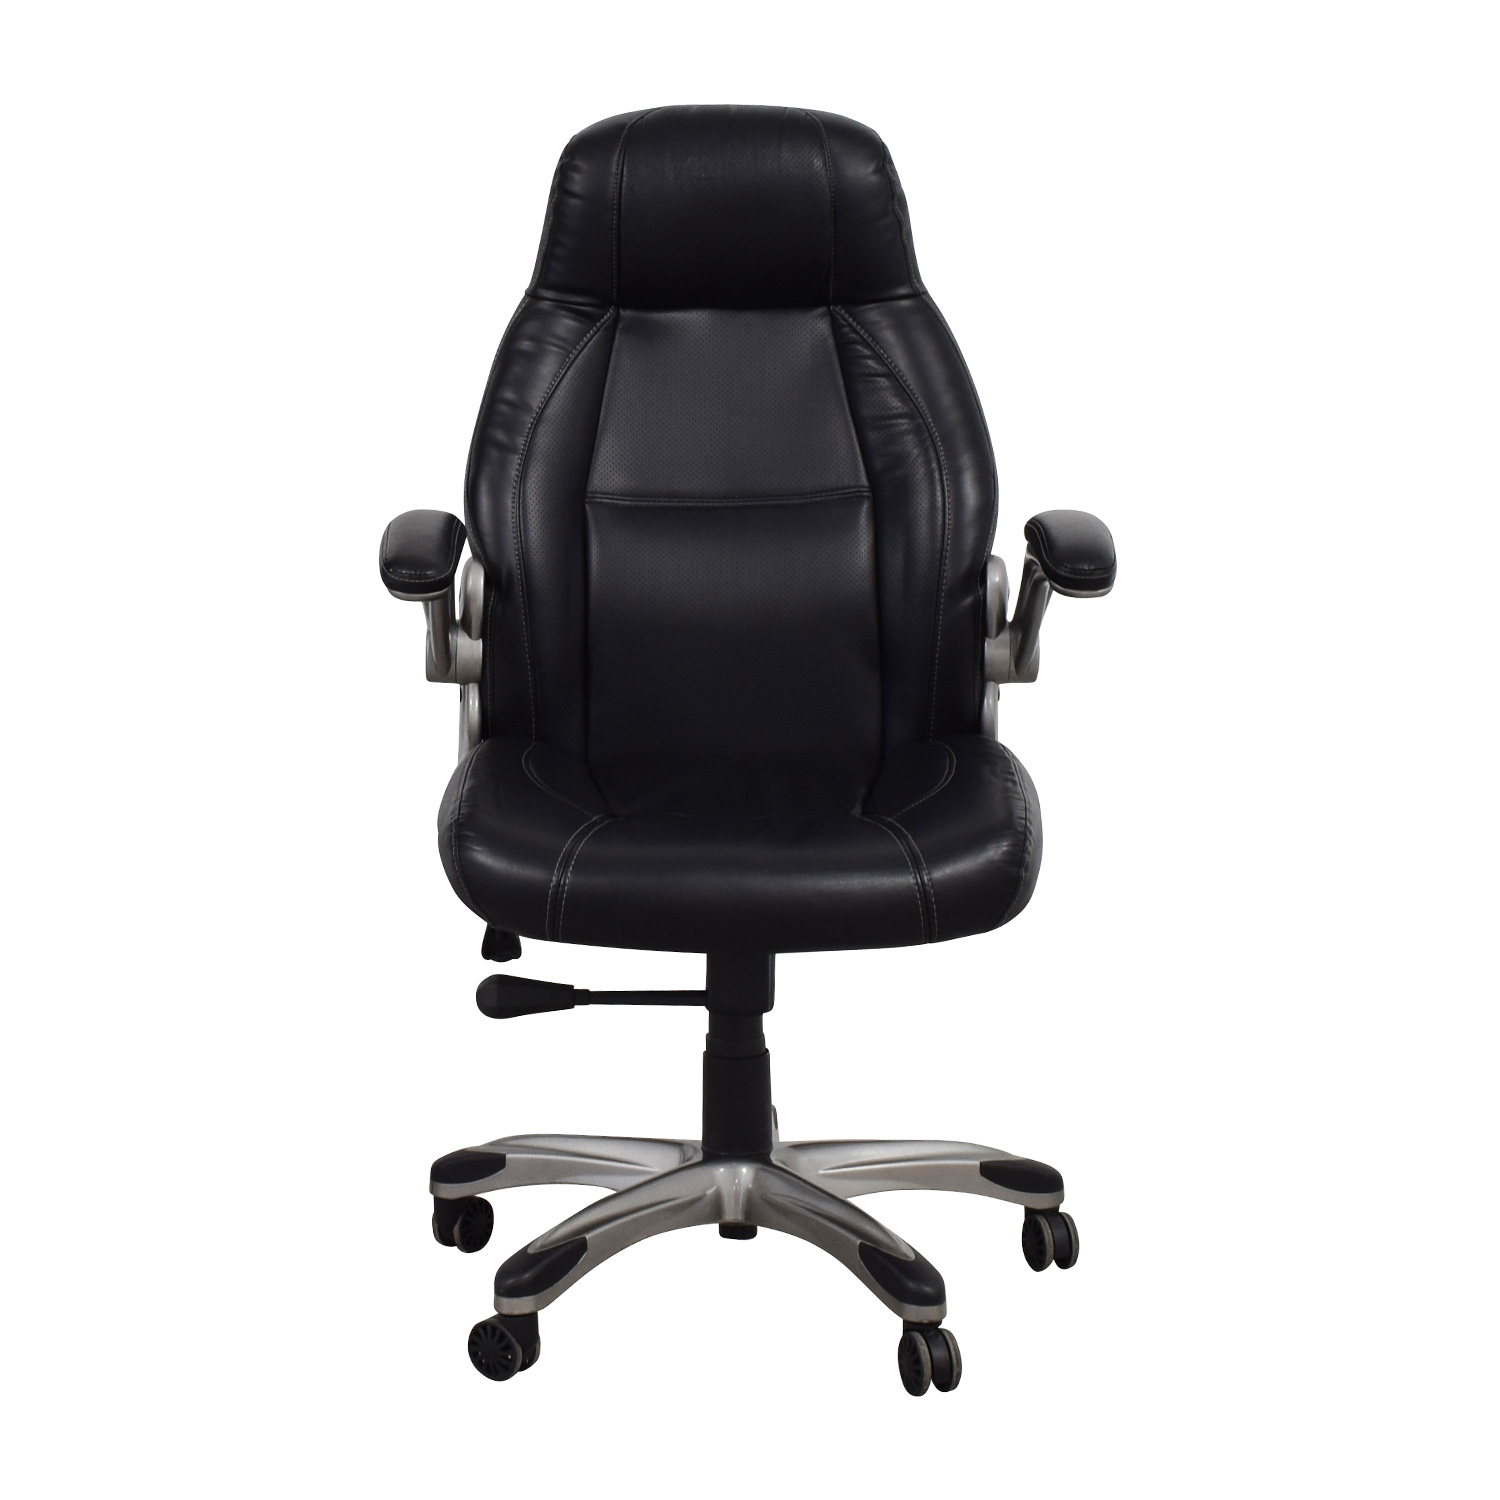 Staples Staples Torrent High-Back Executive Chair in Black discount